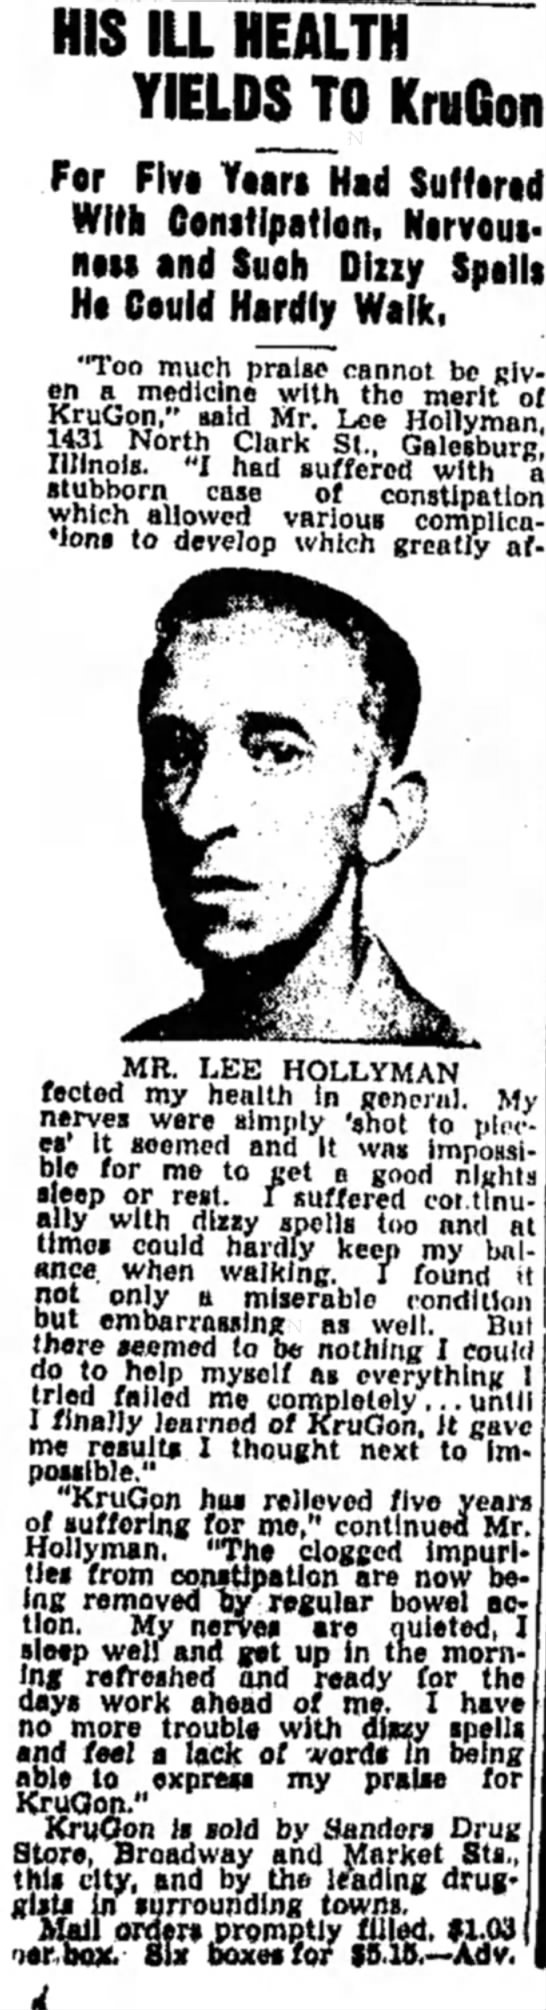 Lee Hollyman testifies to wonders of KruGon's medical powers. - HIS ILL HEALTH YIELDS TO KruGon For Five...